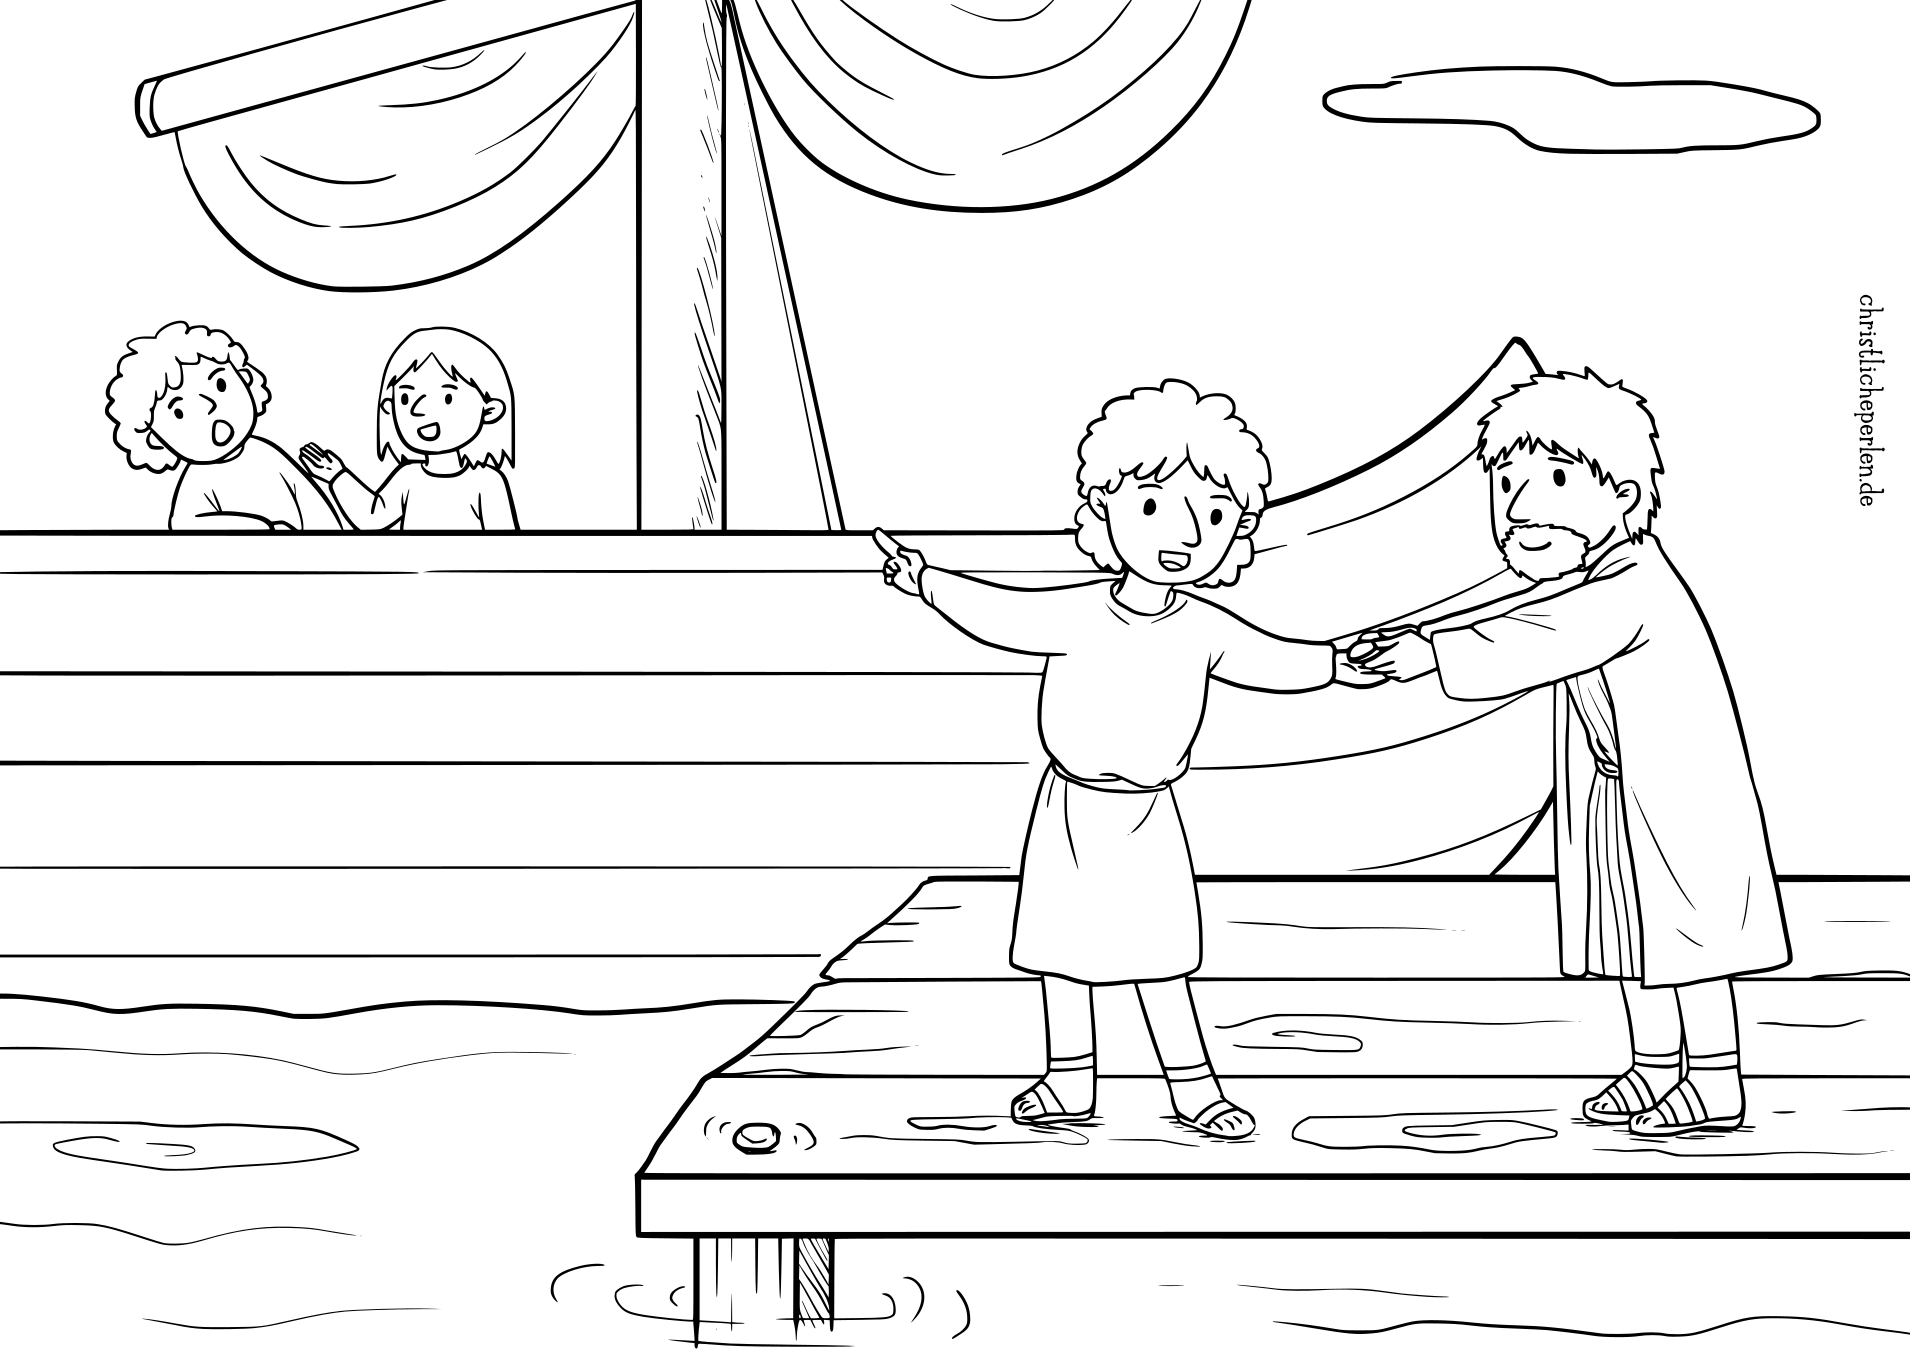 Jona im Wal Ausmalbilder / Jonah in the Whale Coloring Pages ...